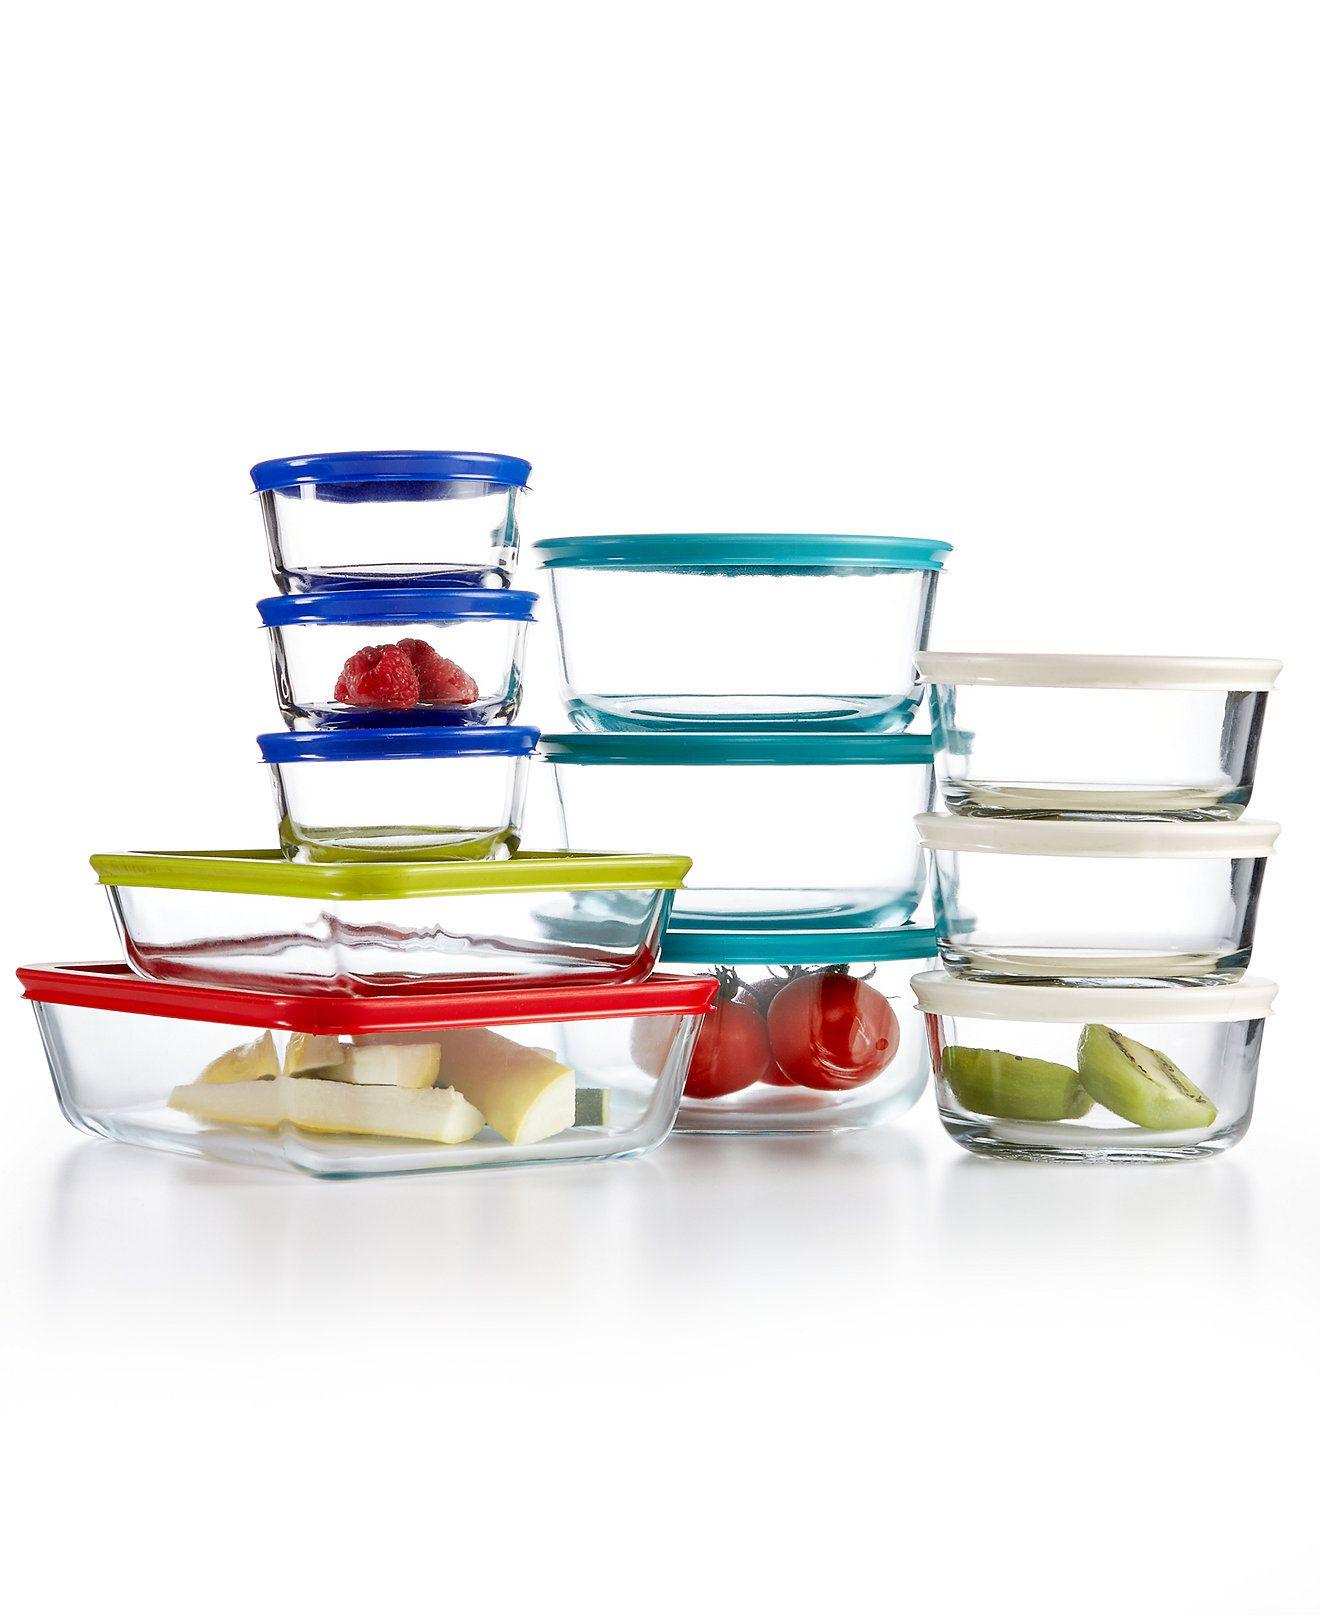 Pyrex 22 Piece Food Storage Container Set, Created for